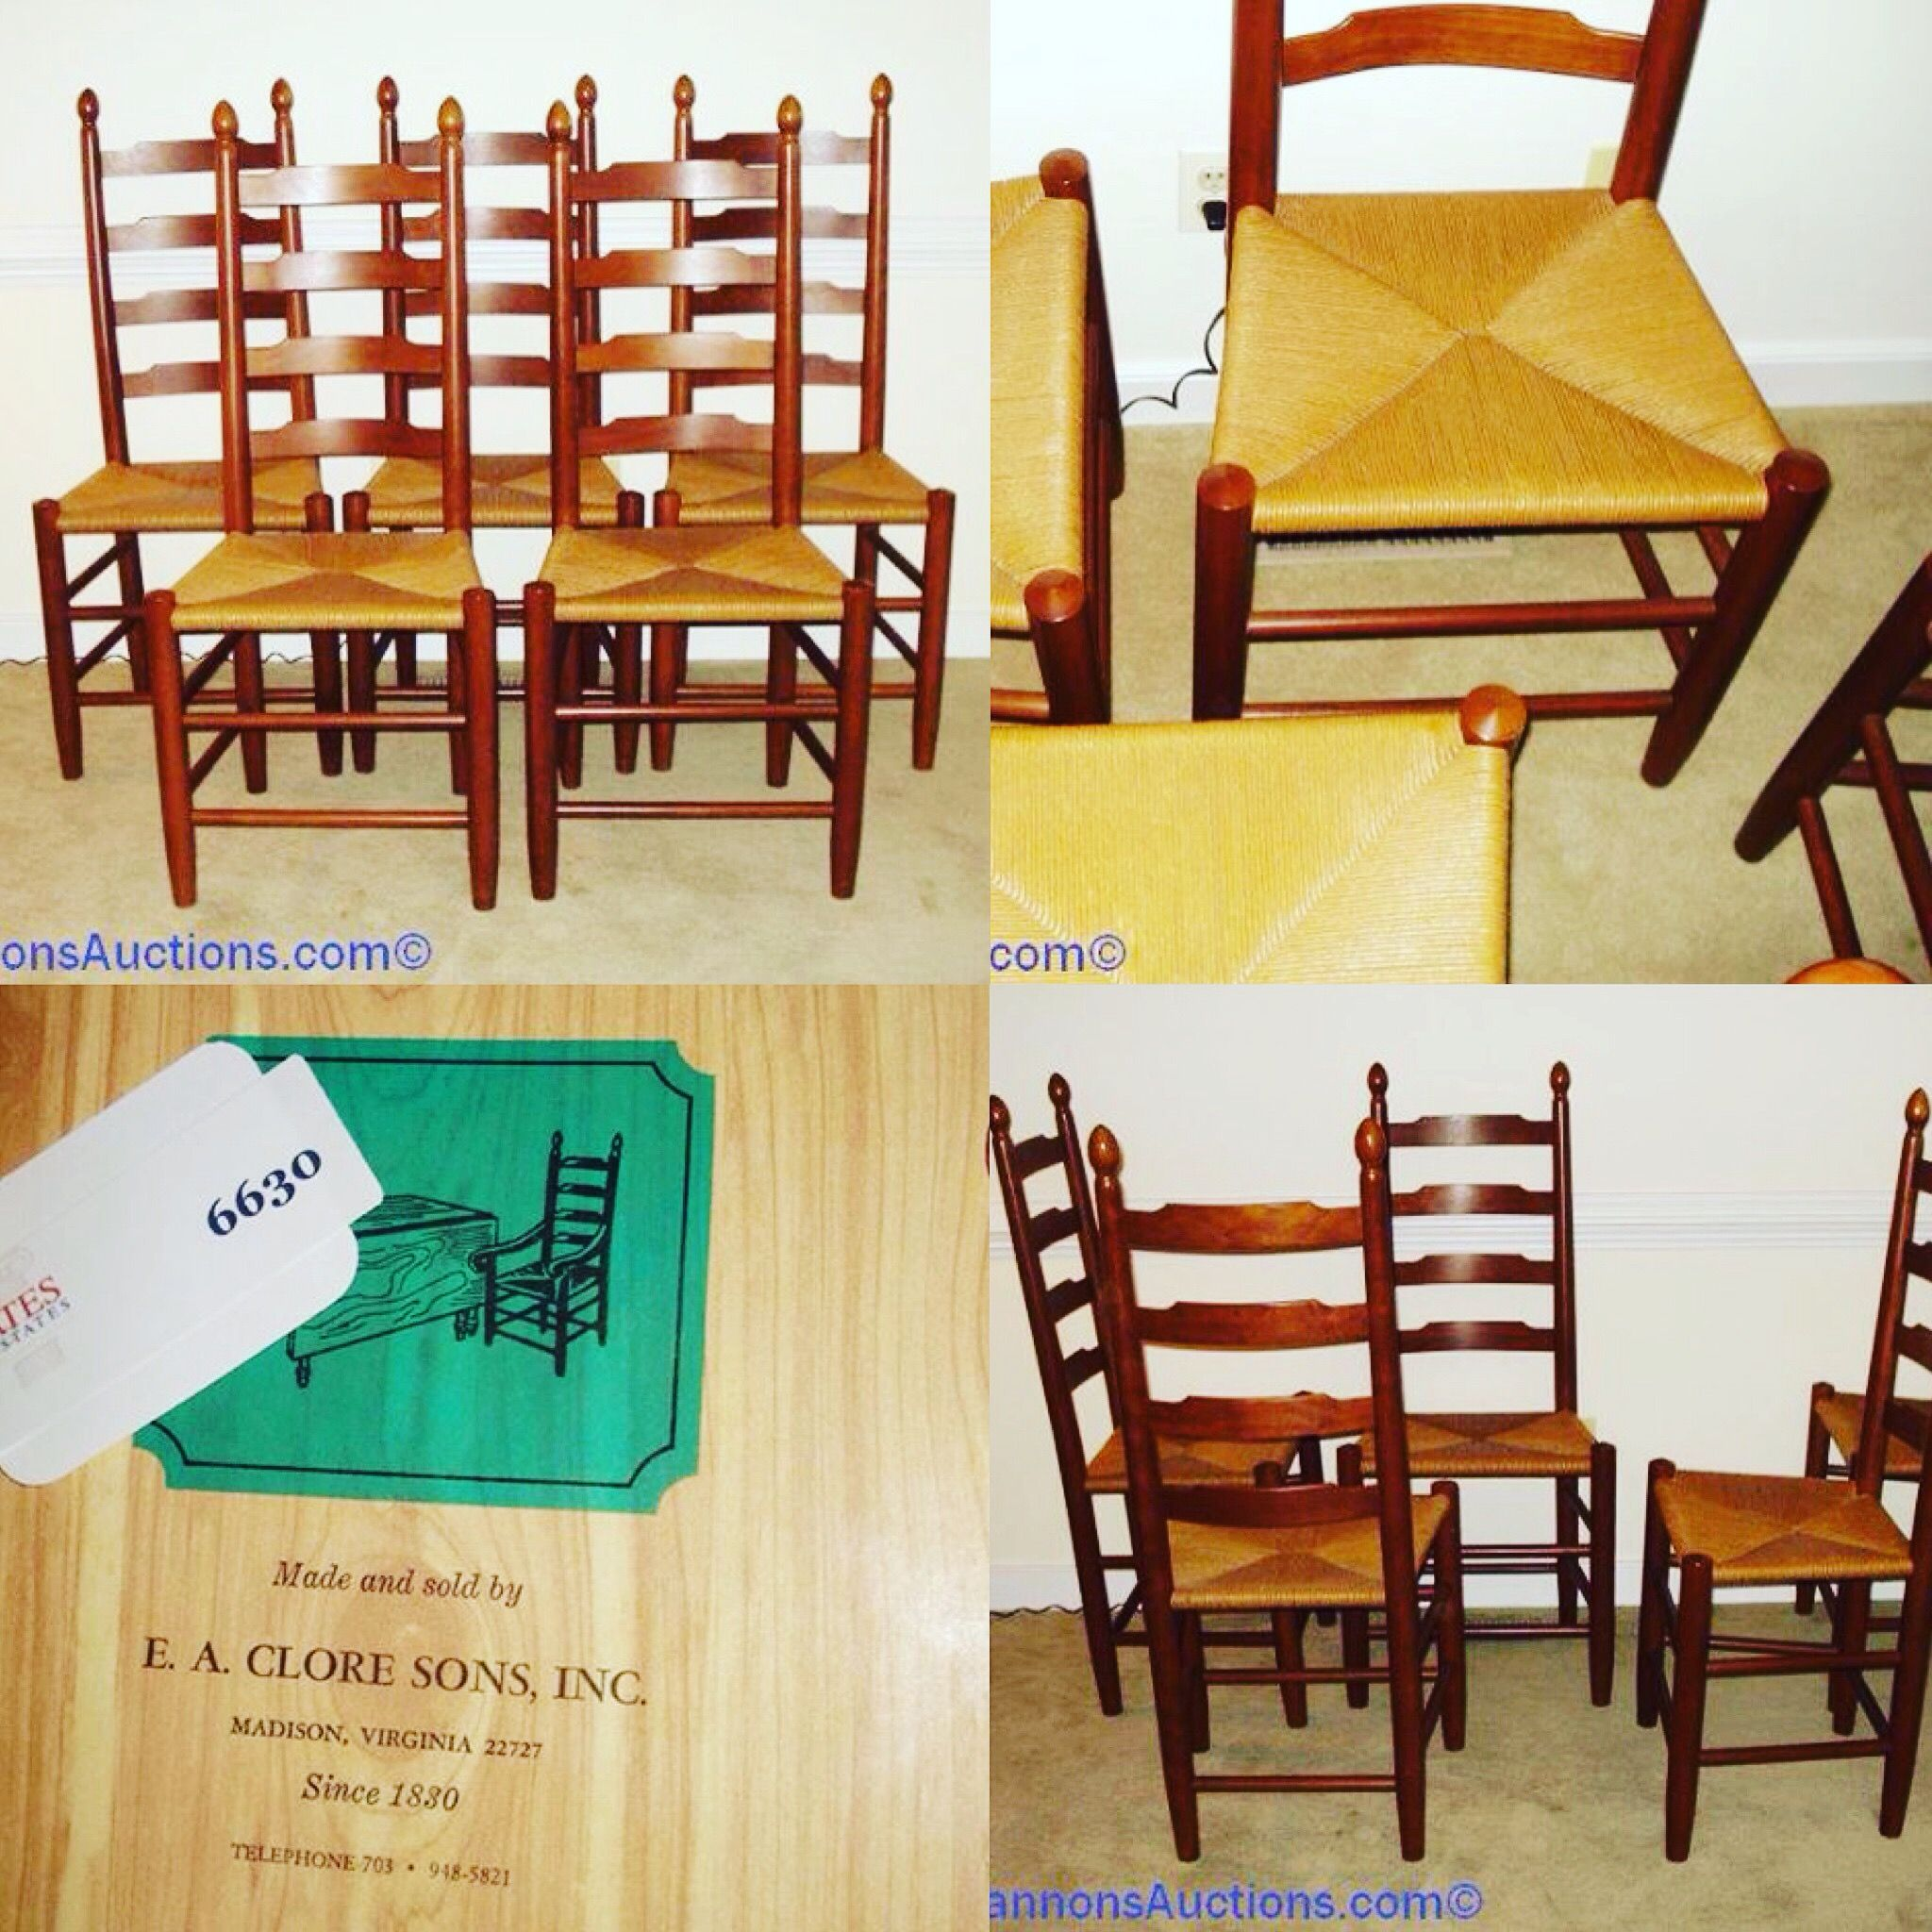 Five Solid E.A. Clore Sons Cherry Ladder Back Chairs With Rush Bottoms.  Bids Close